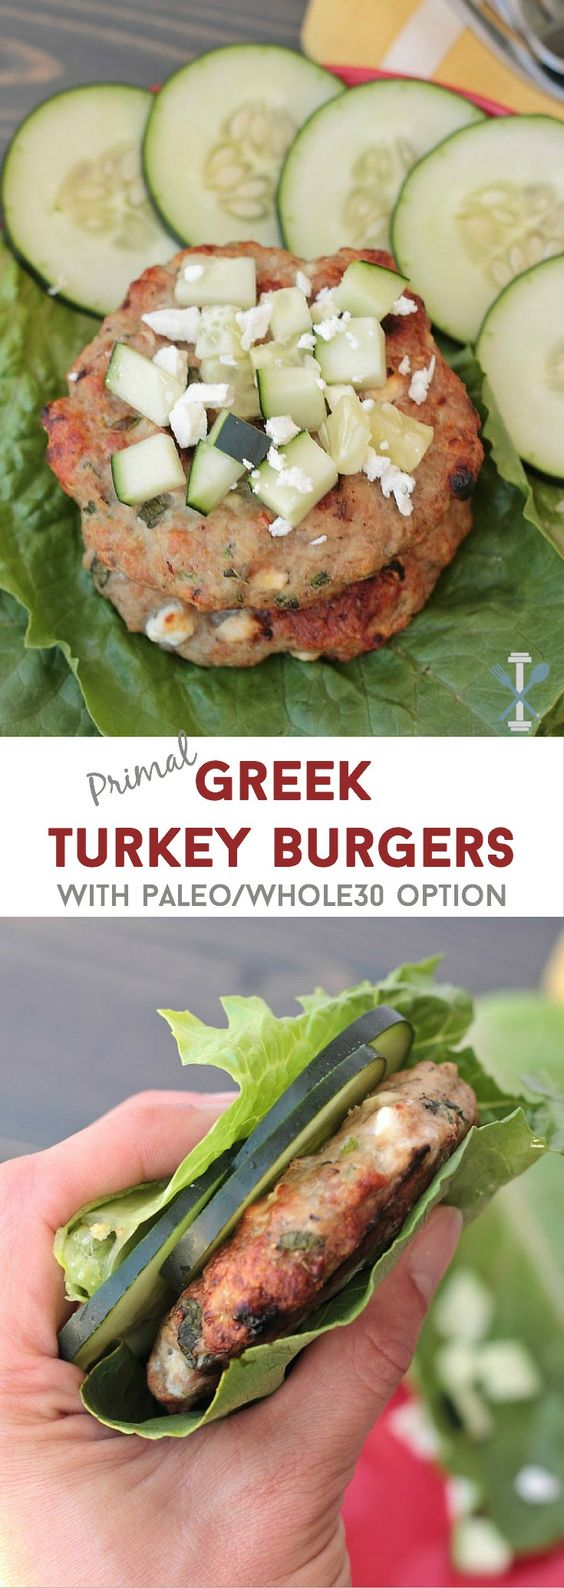 These primal Greek turkey burgers are the perfect lean burger - packed with…